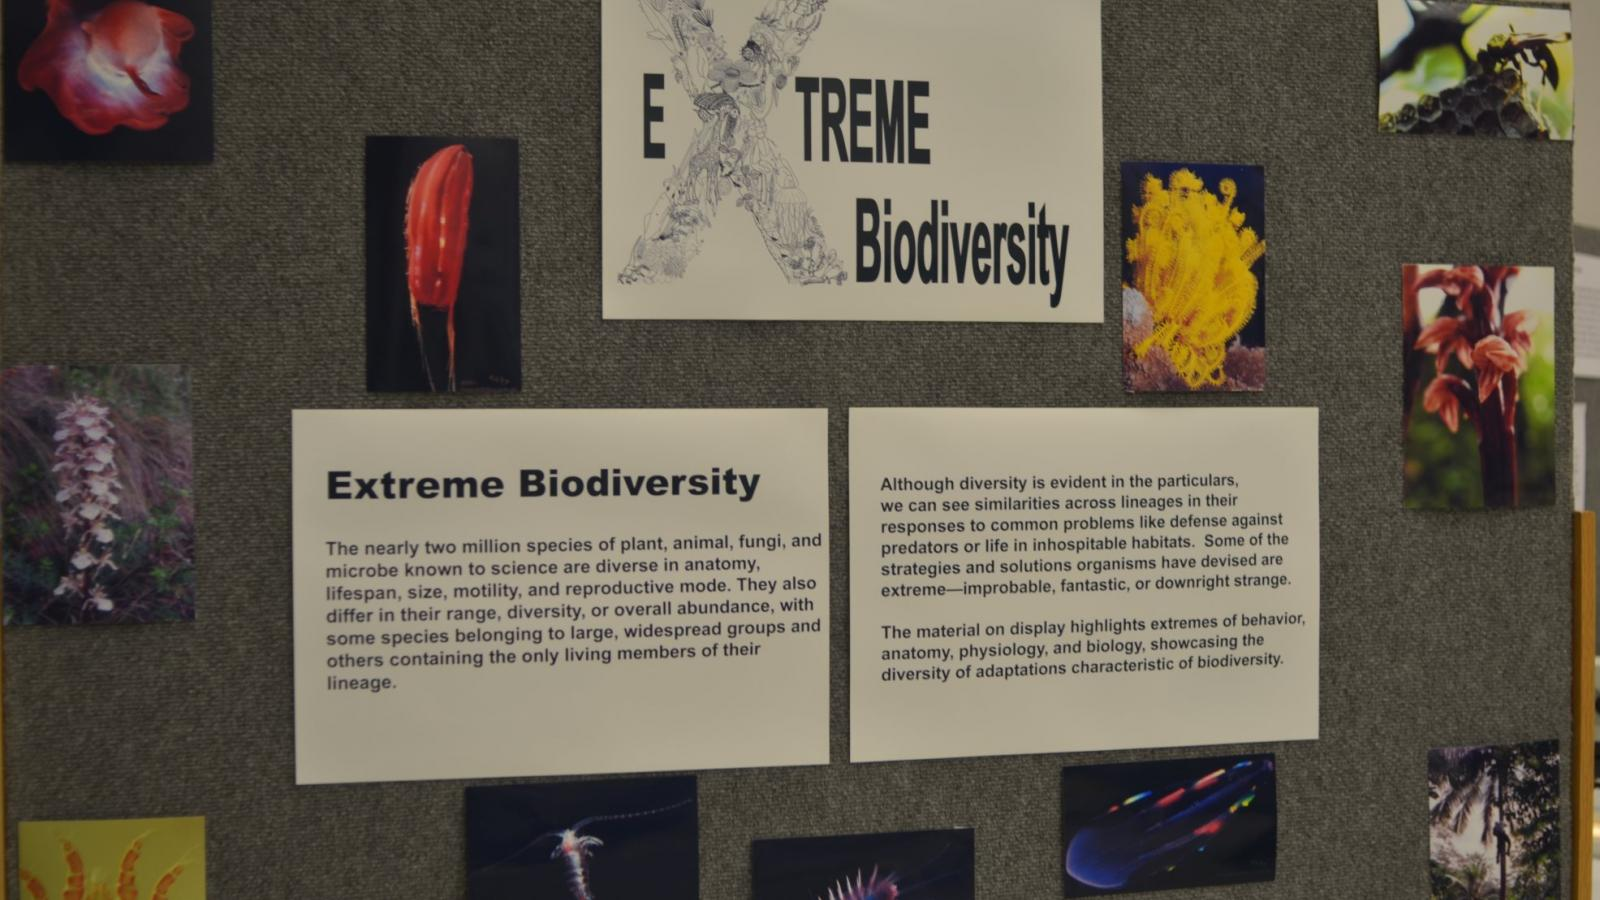 Extreme biodiversity auditorium display